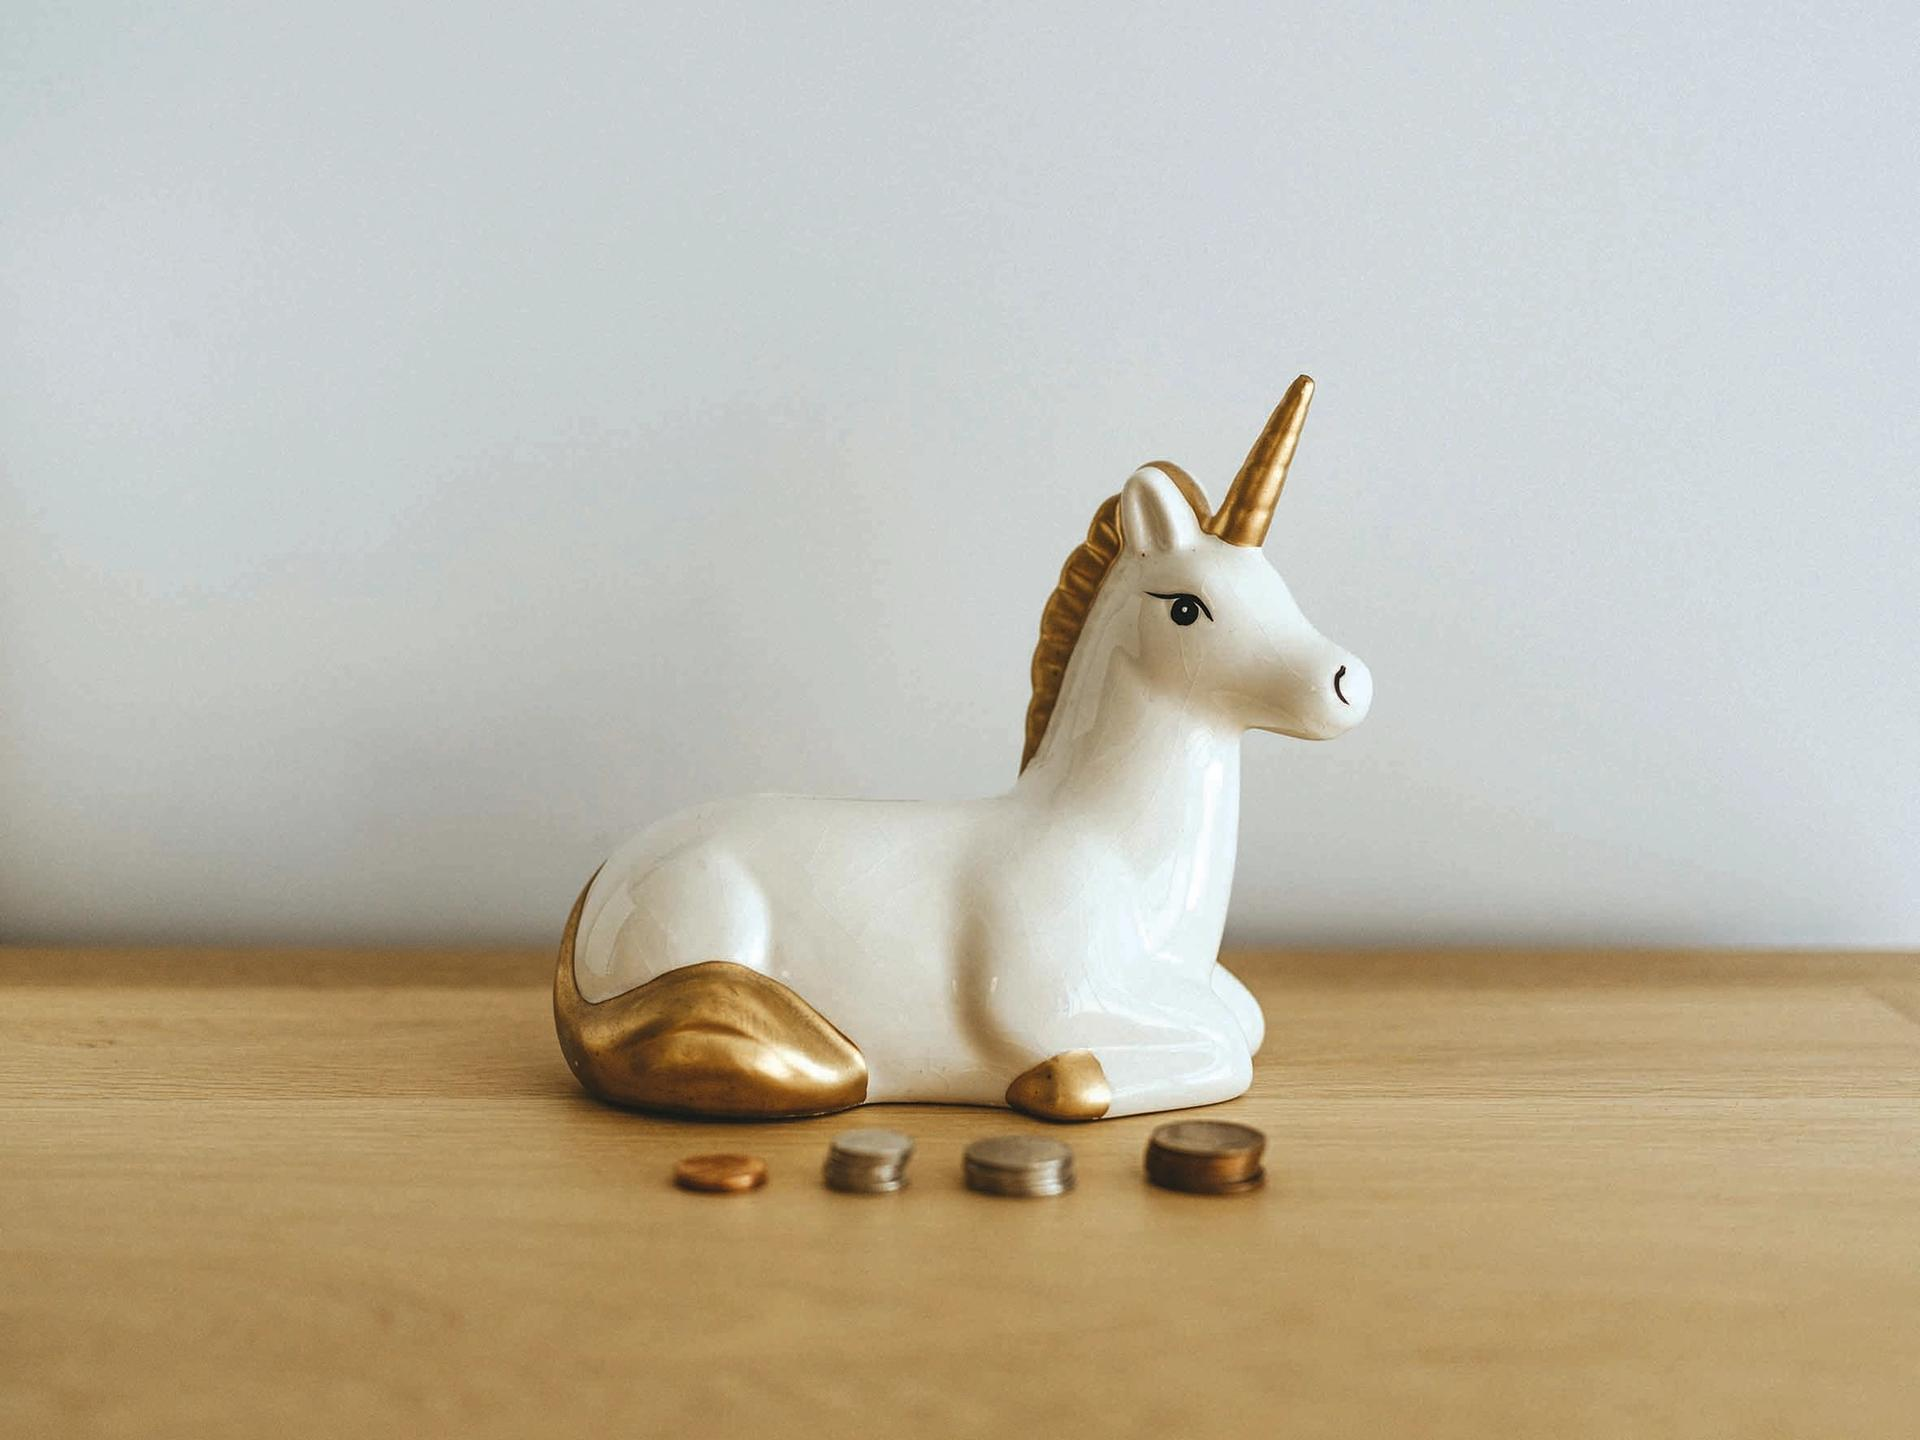 In the finance world, a unicorn is a startup whose value ultimately reaches more than $1bn © Annie Spratt